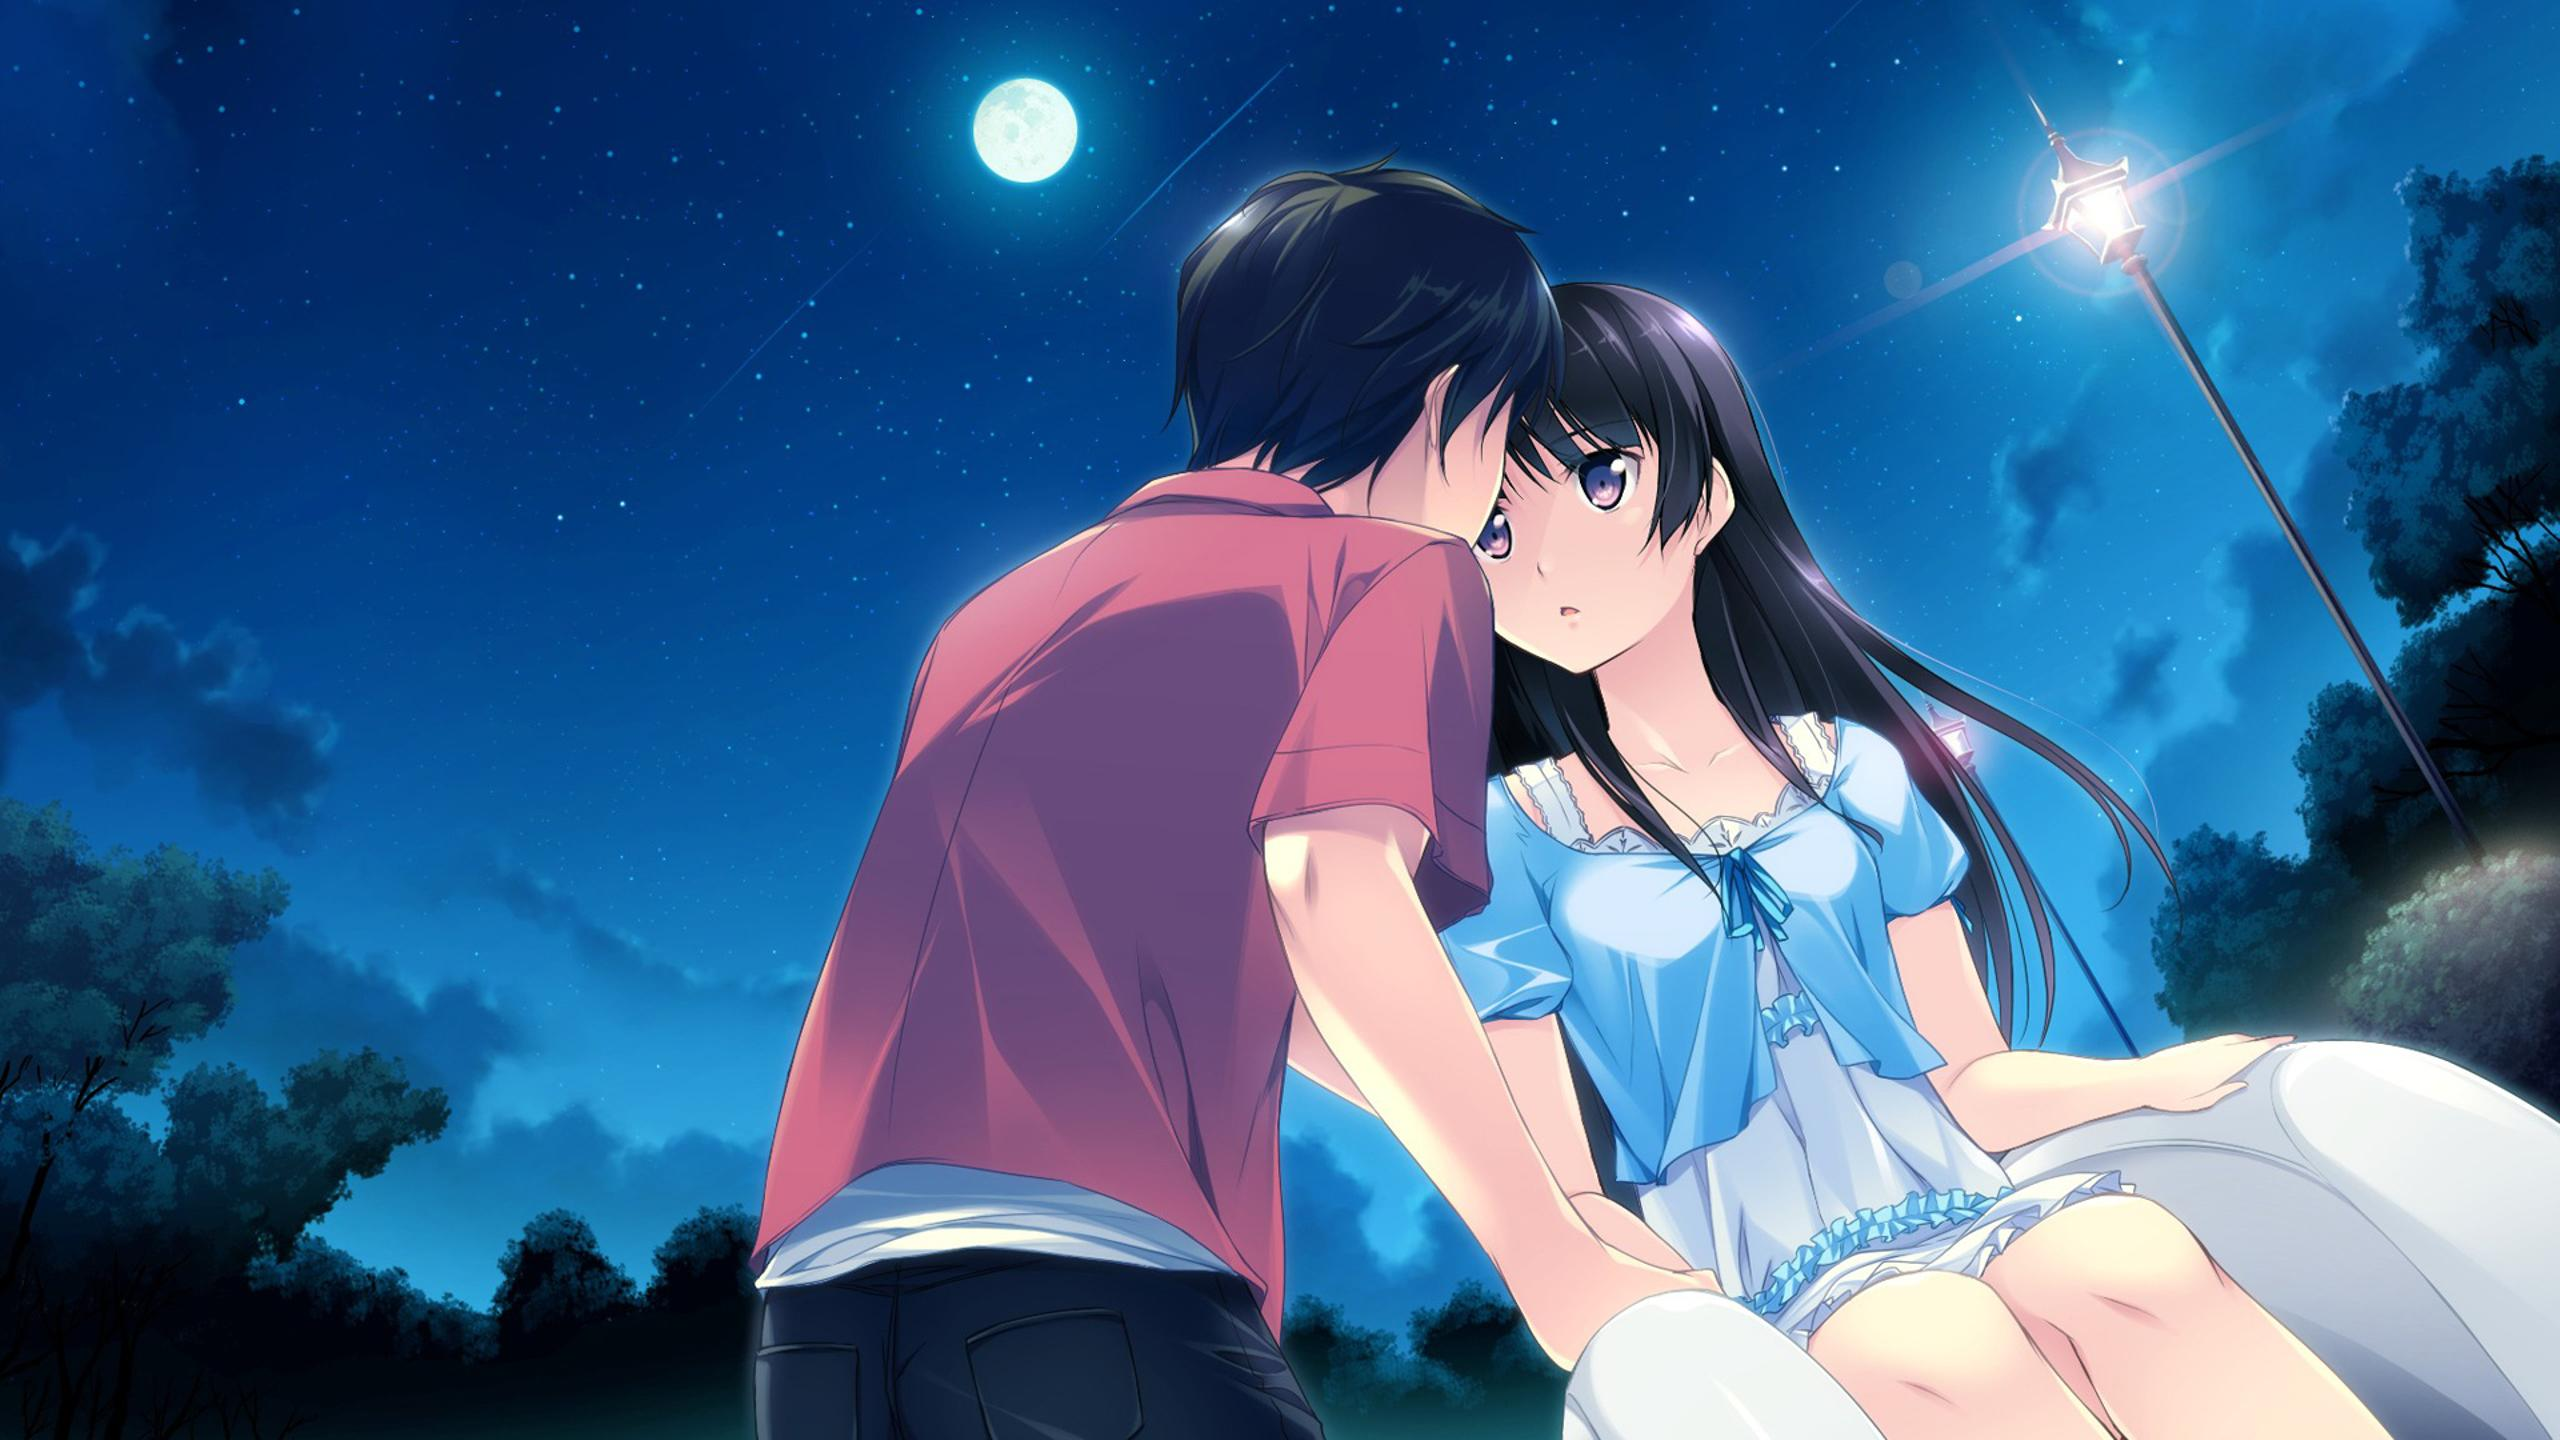 anime couple during the night under the moonlight wallpaper download